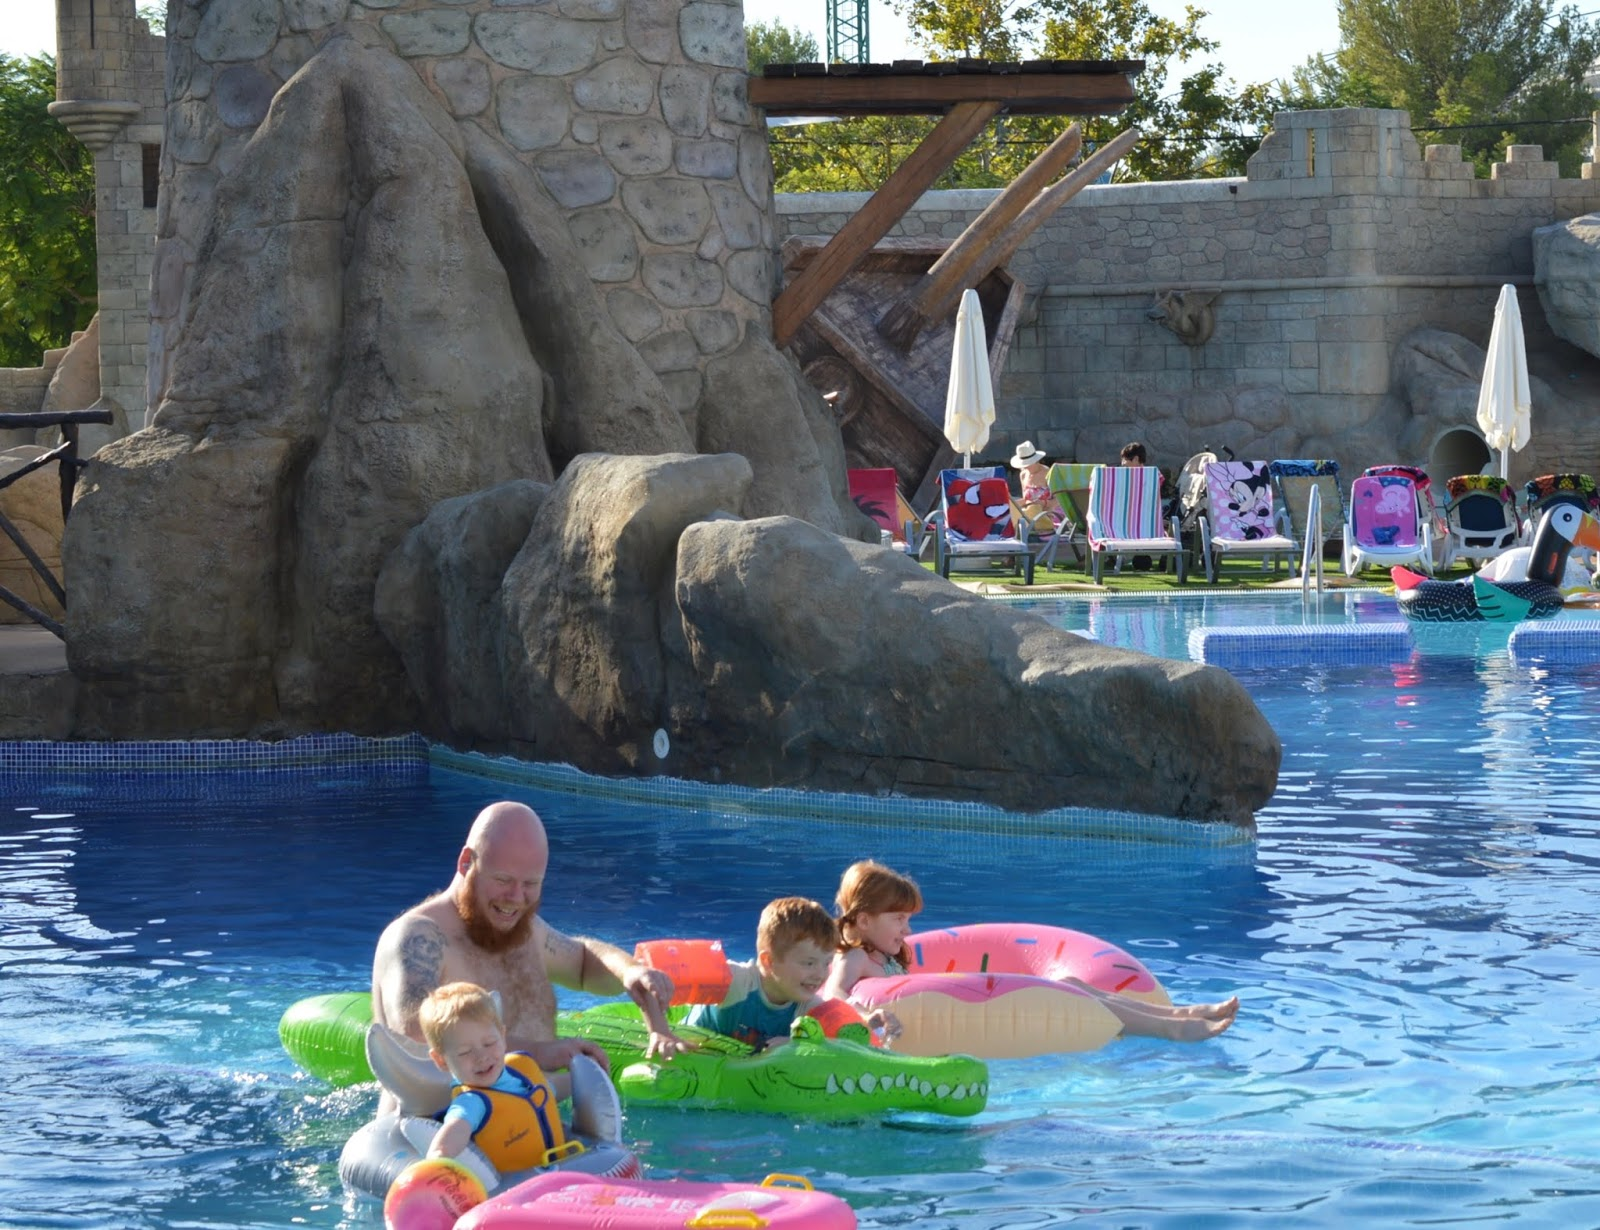 Pirates Village Santa Ponsa | Jet 2 Holidays Review  - inflatables in pool